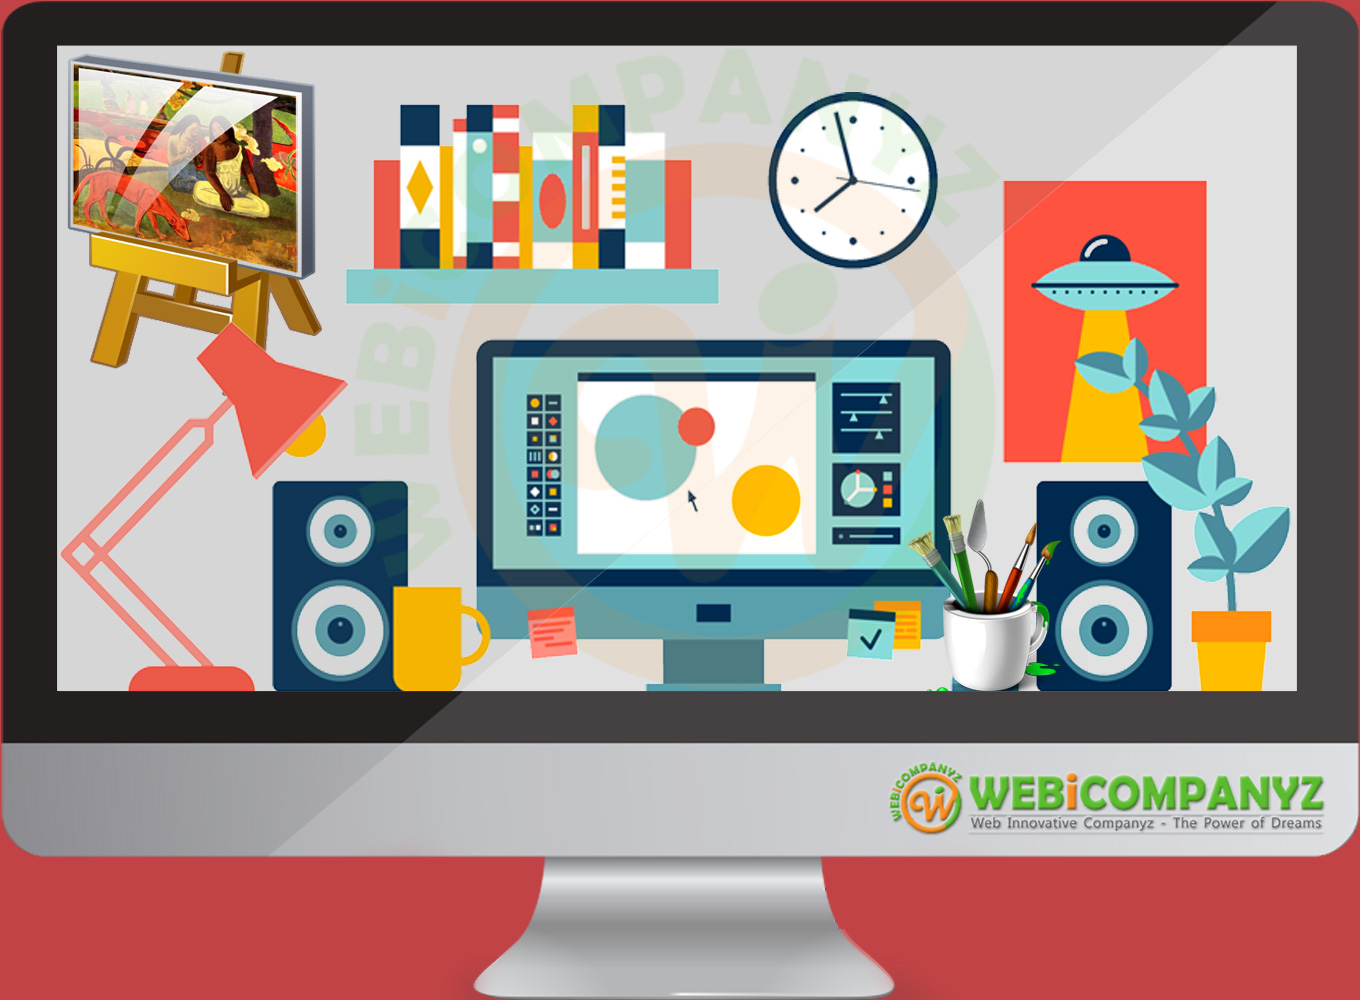 WebiCompanyz - Best Graphic Designing Company in India